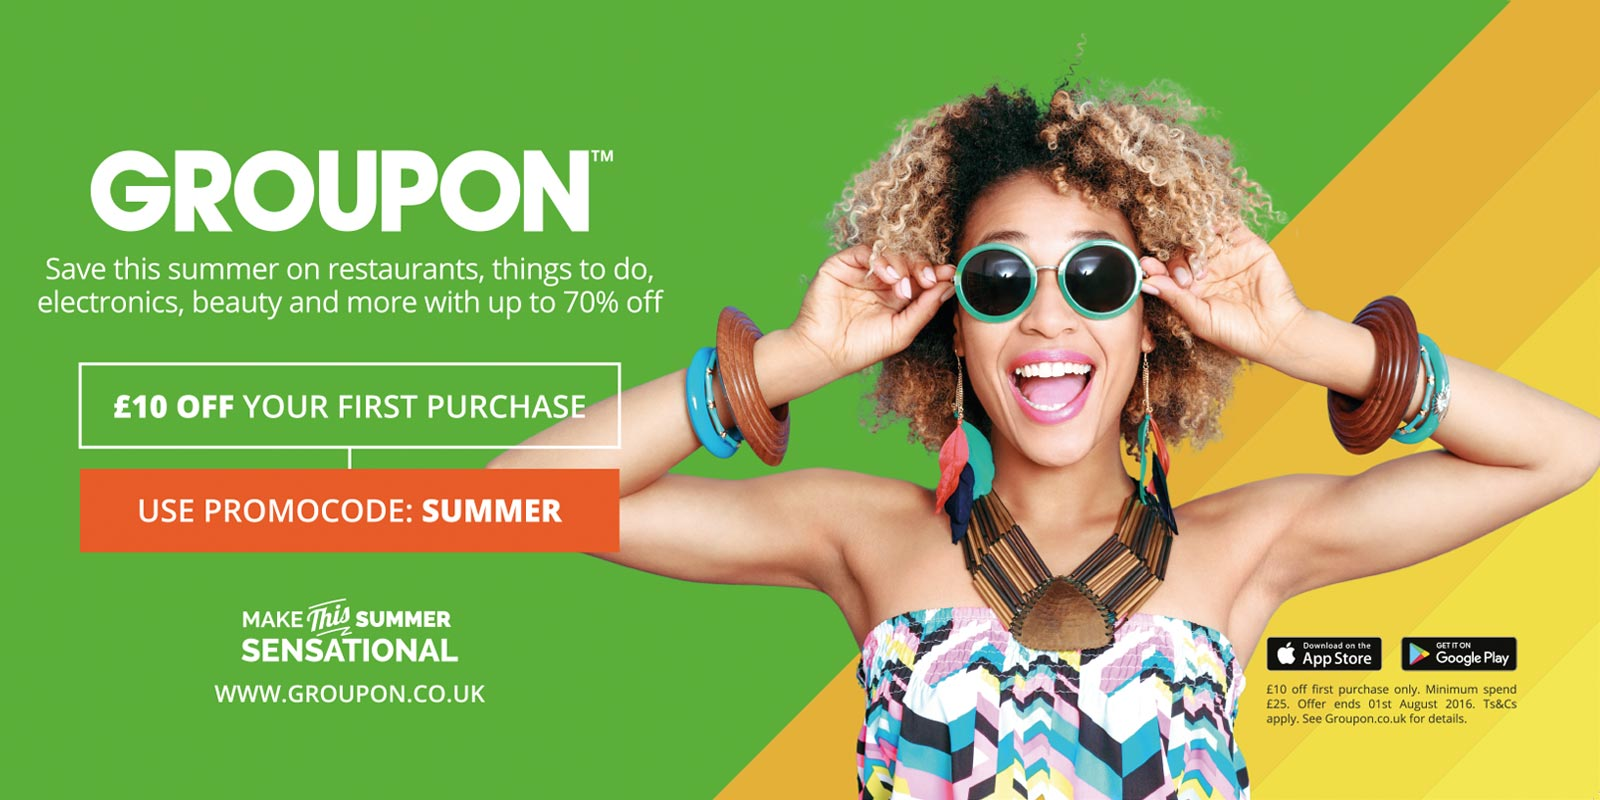 Groupon Sensational Summer OOH Advertising